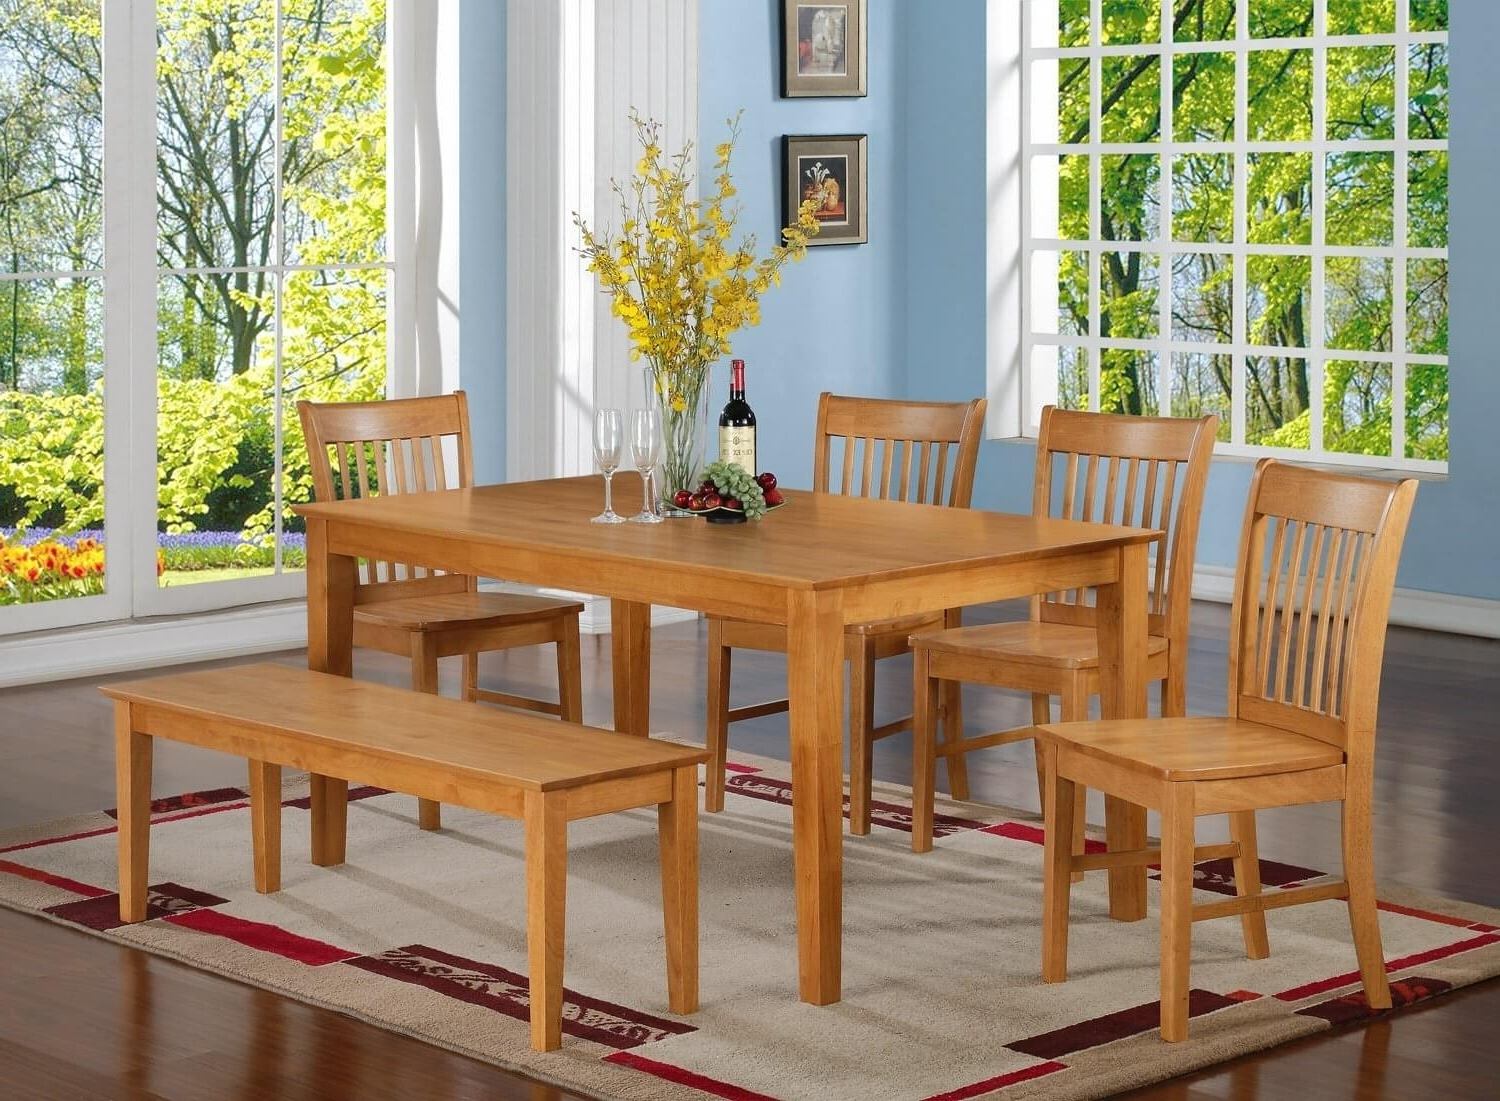 Preferred Dining Tables Seats 8 Throughout 26 Dining Room Sets (Big And Small) With Bench Seating (2018) (Gallery 16 of 25)